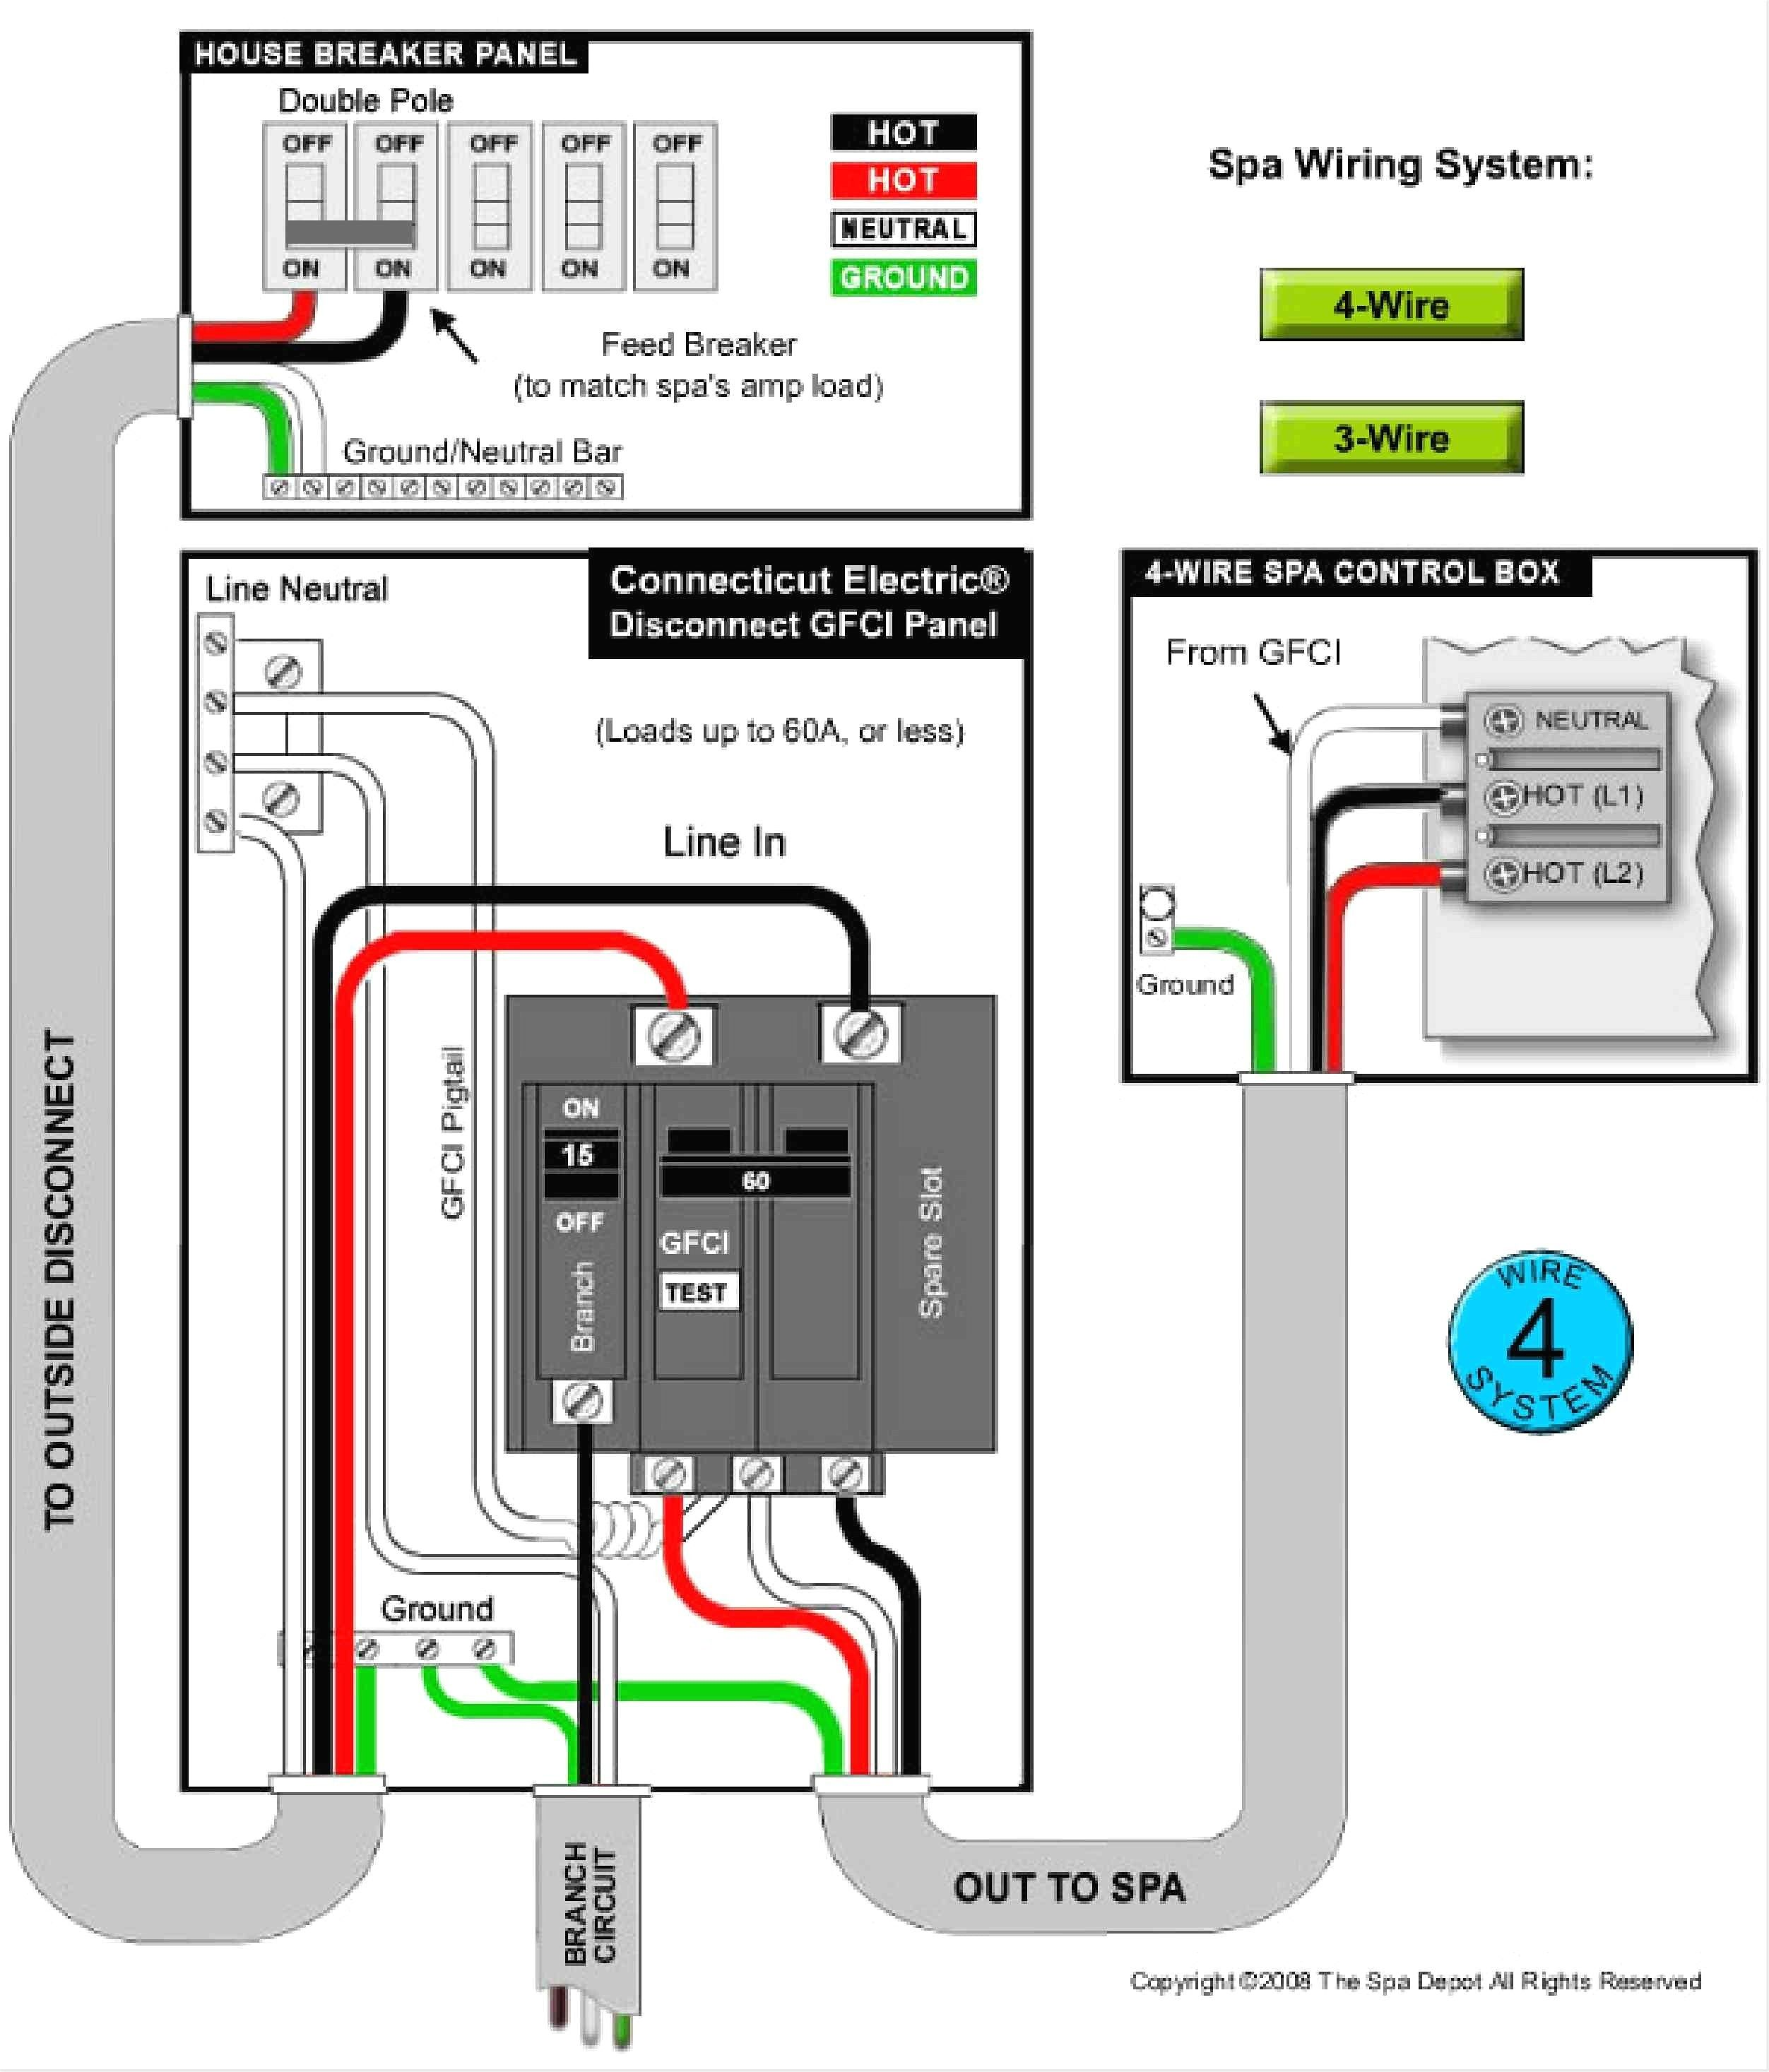 new gfci wiring diagram for hot tub diagram diagramsample  4 wire diagram hot tub #3